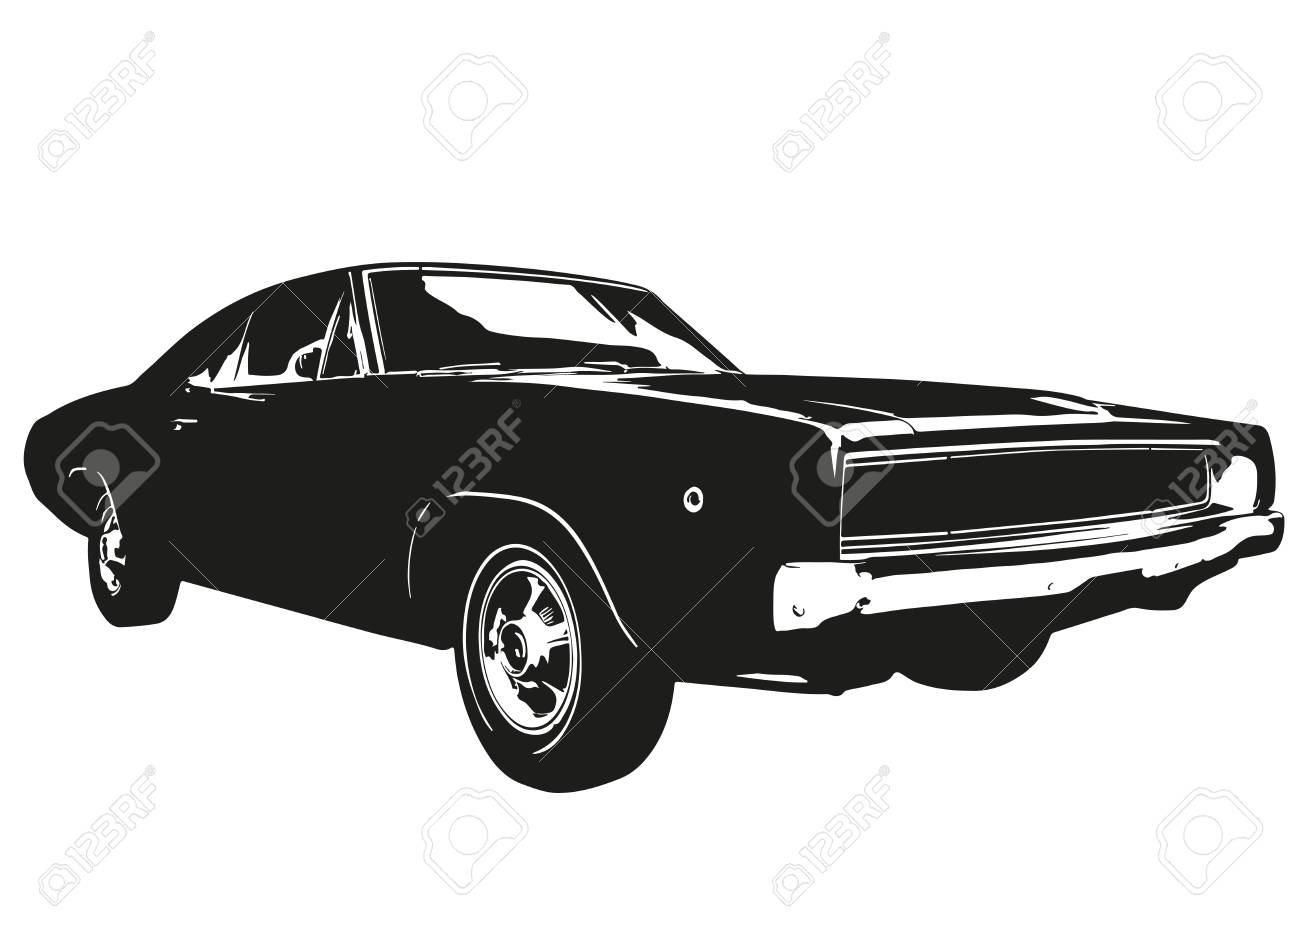 American Vintage Muscle Car Silhouette Royalty Free Cliparts ...